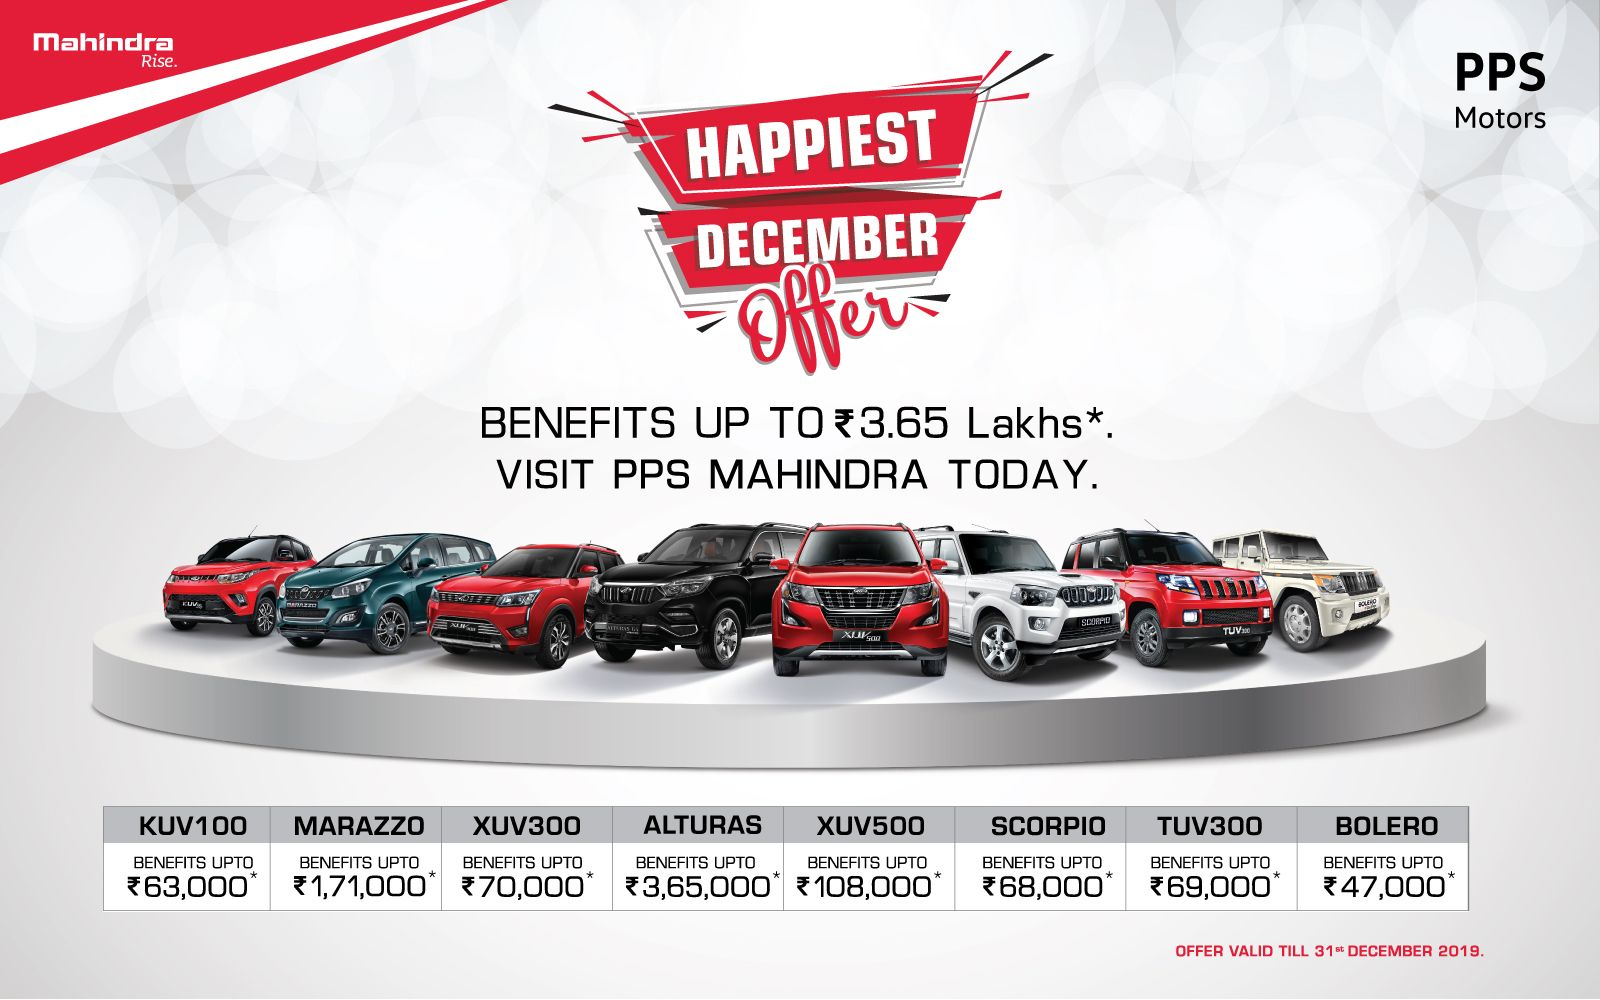 pps mahindra bengaluru december promotion offers